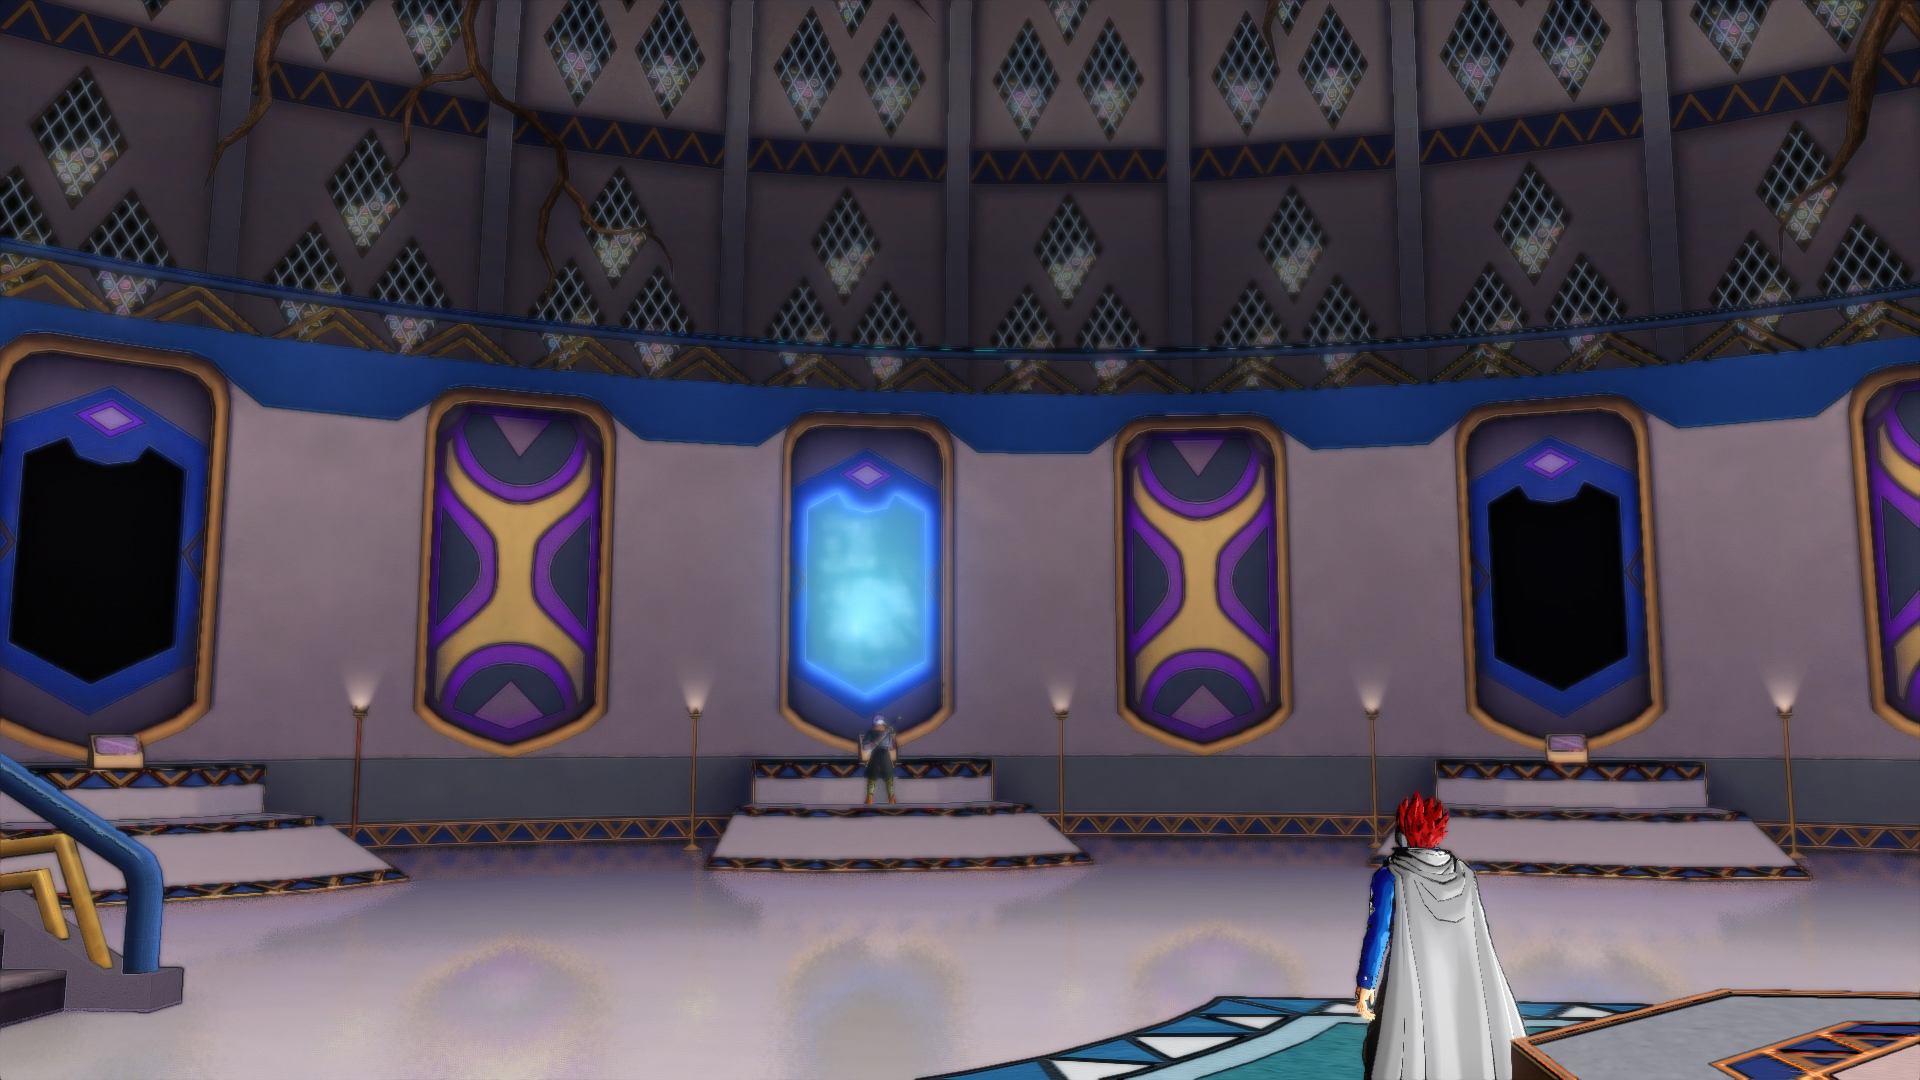 Dragon Ball Xenoverse Jan 2015 Screenshots 42